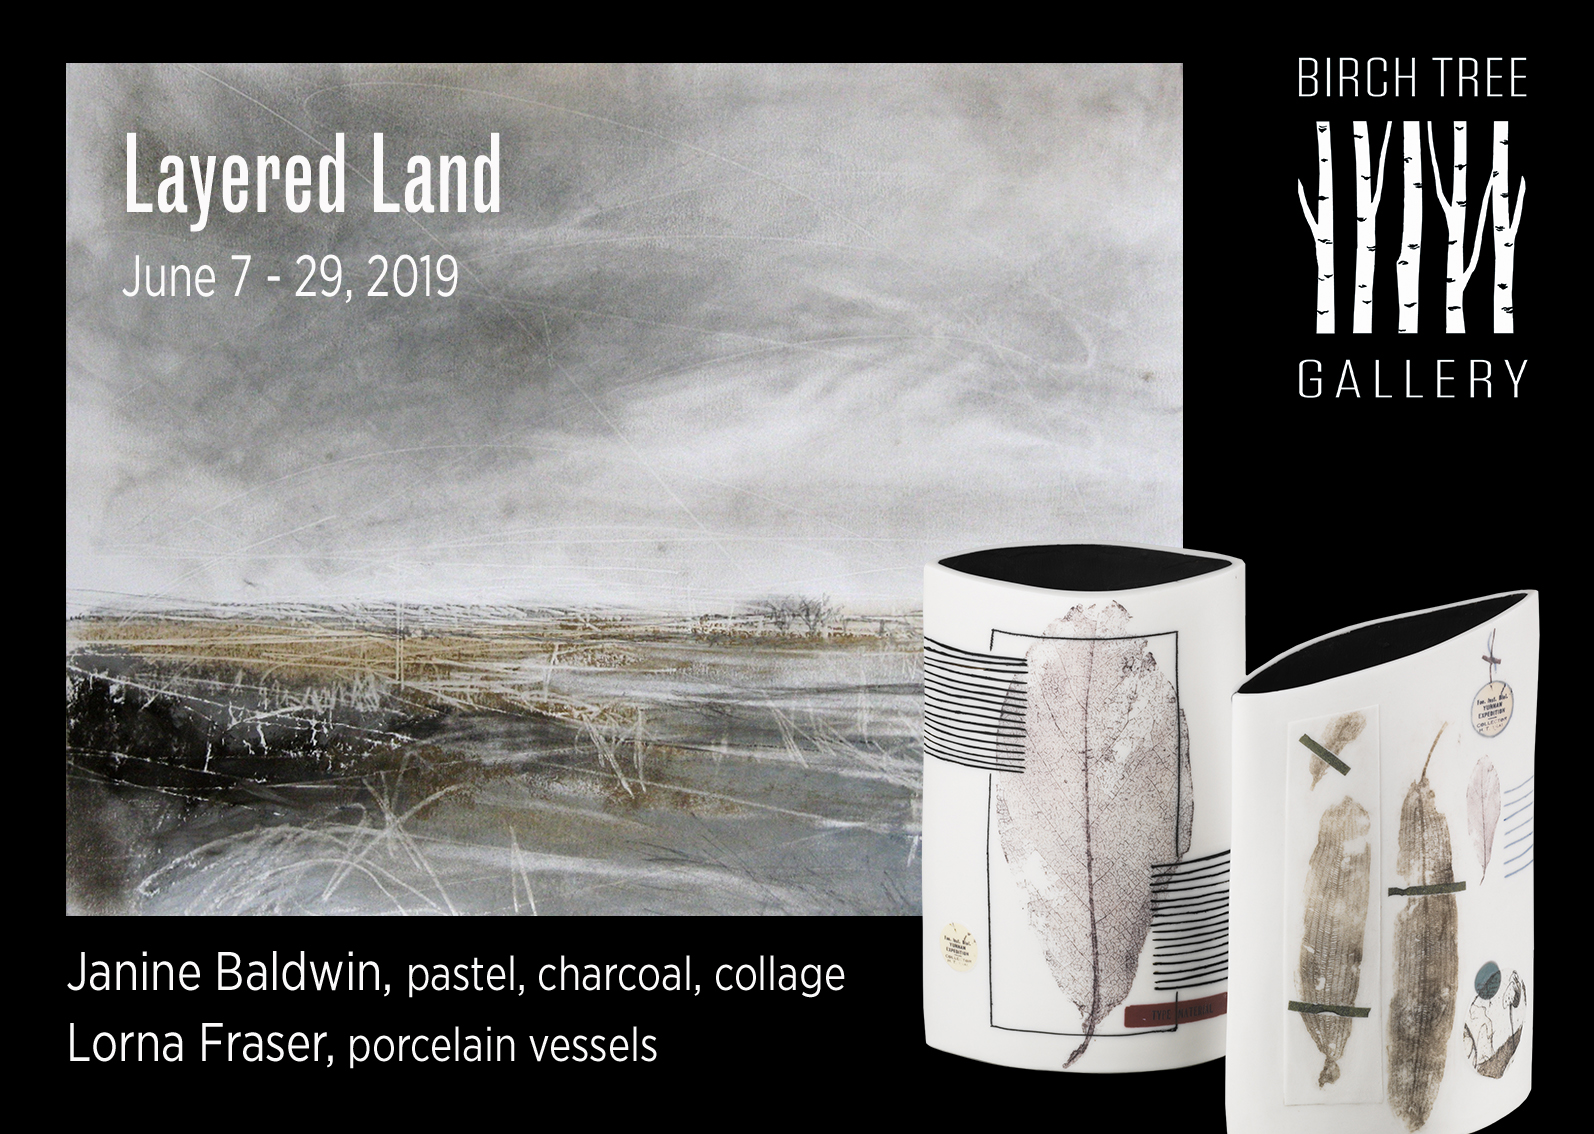 Birch Tree Gallery exhibition Layered Land